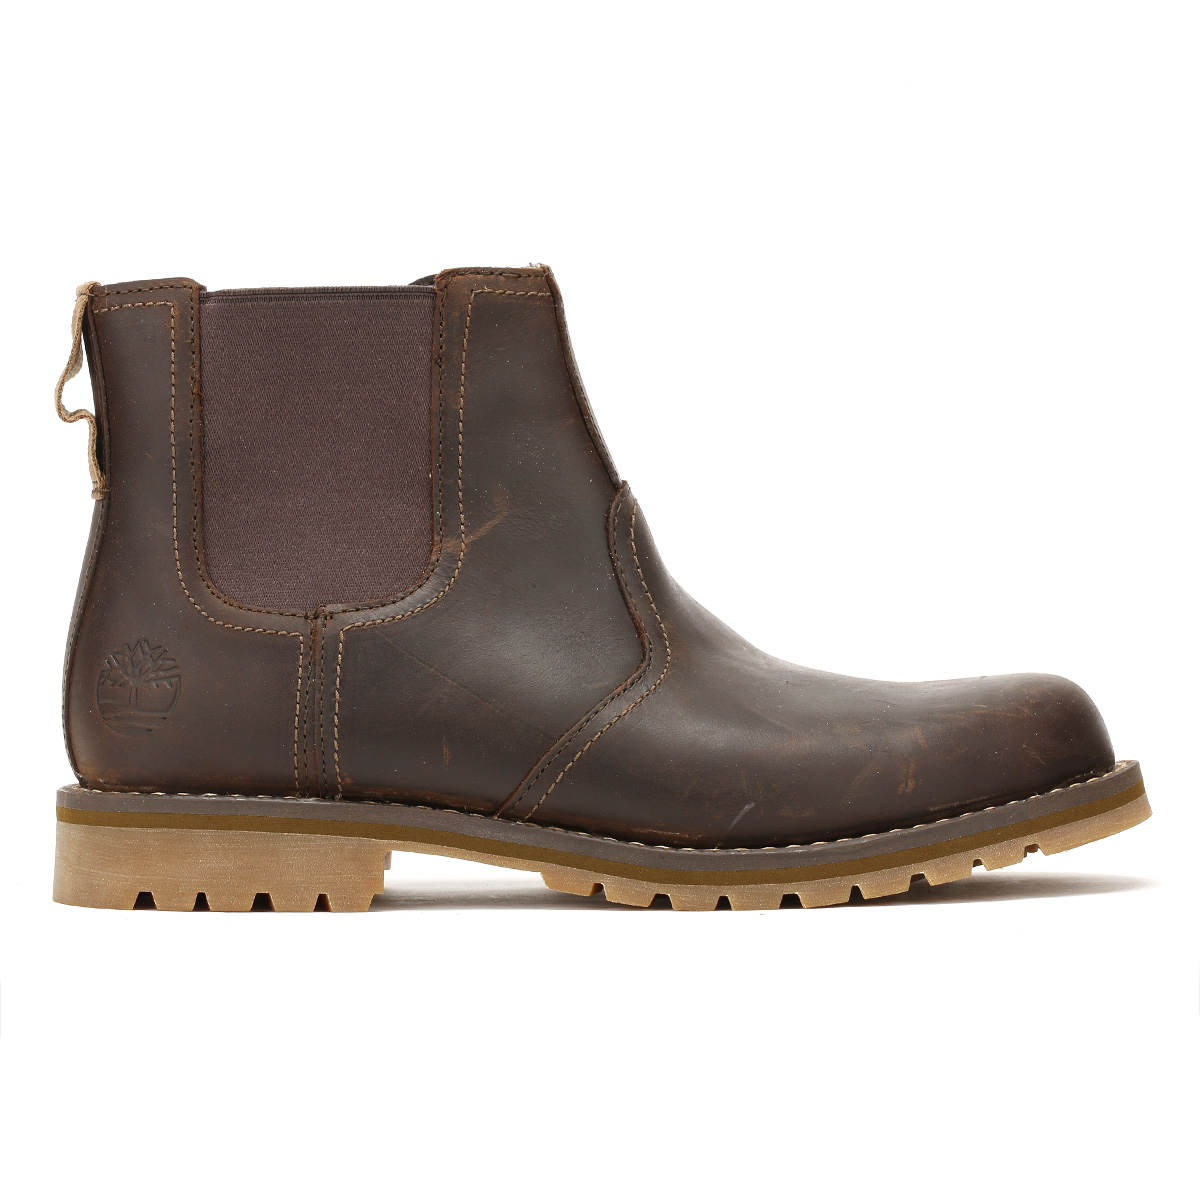 browse online Dark brown leather 'Larchmont' Chelsea boots buy cheap best prices HlJhqs